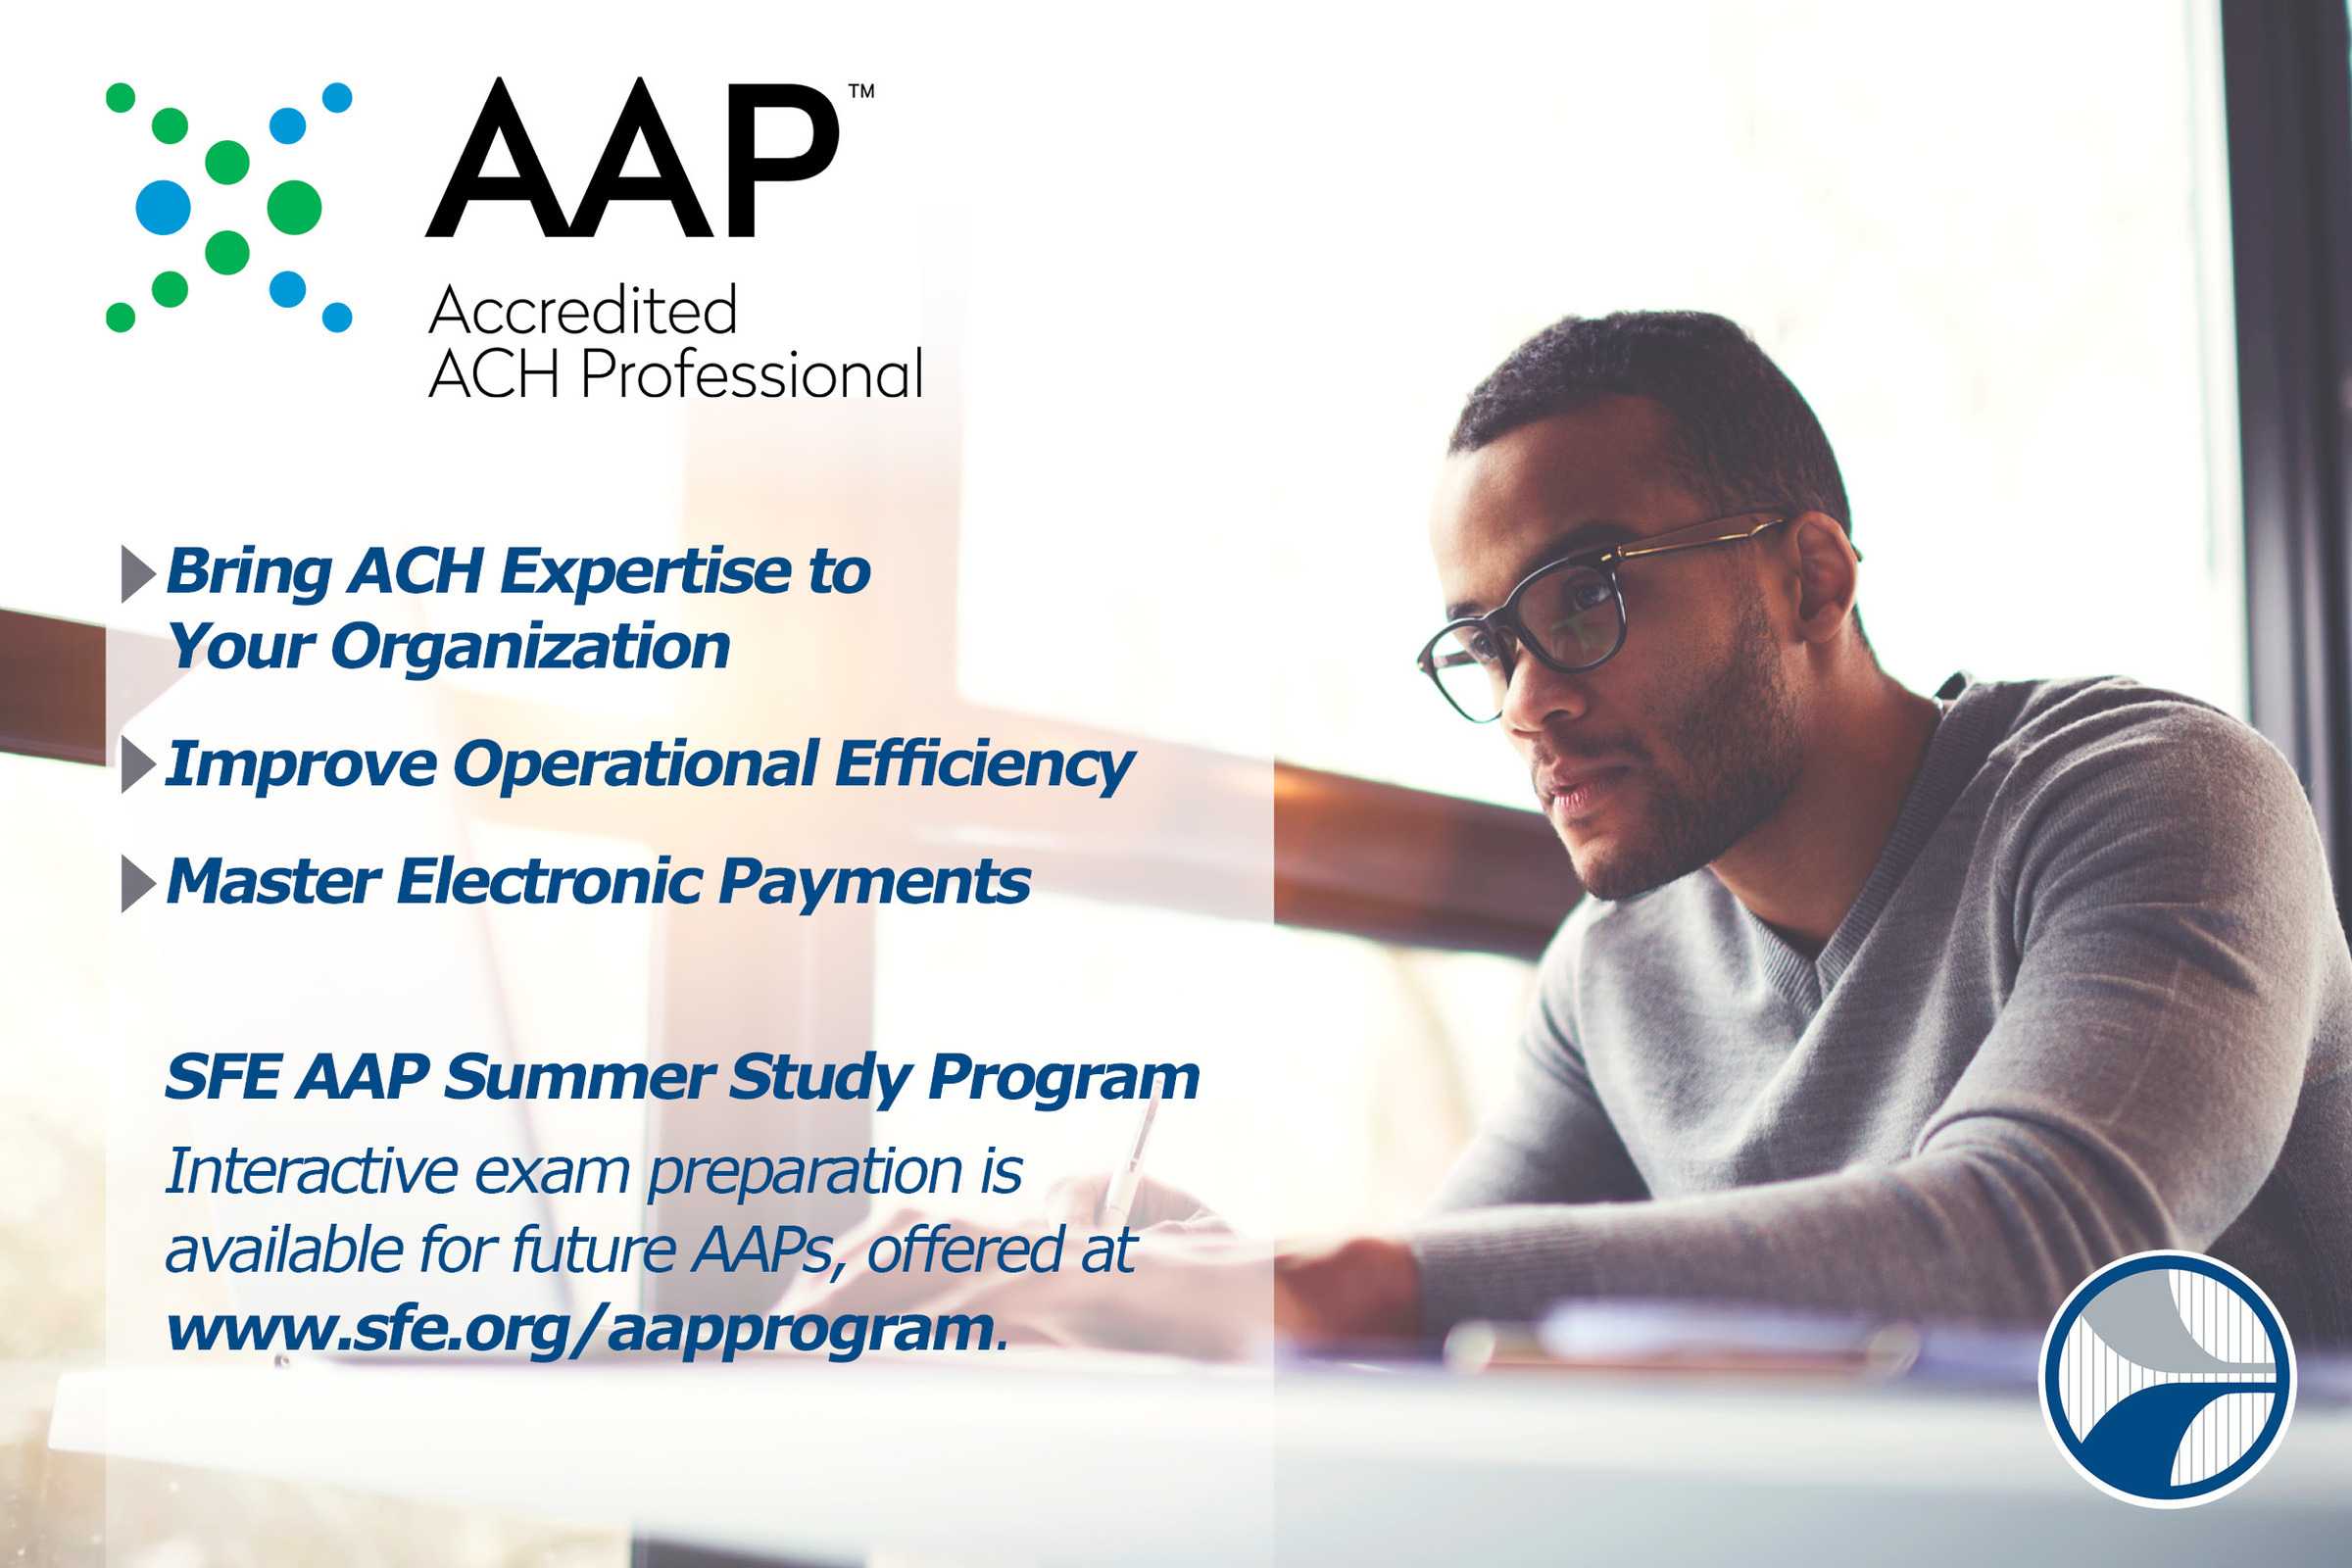 AAPs Deliver Value & Expertise to the Team